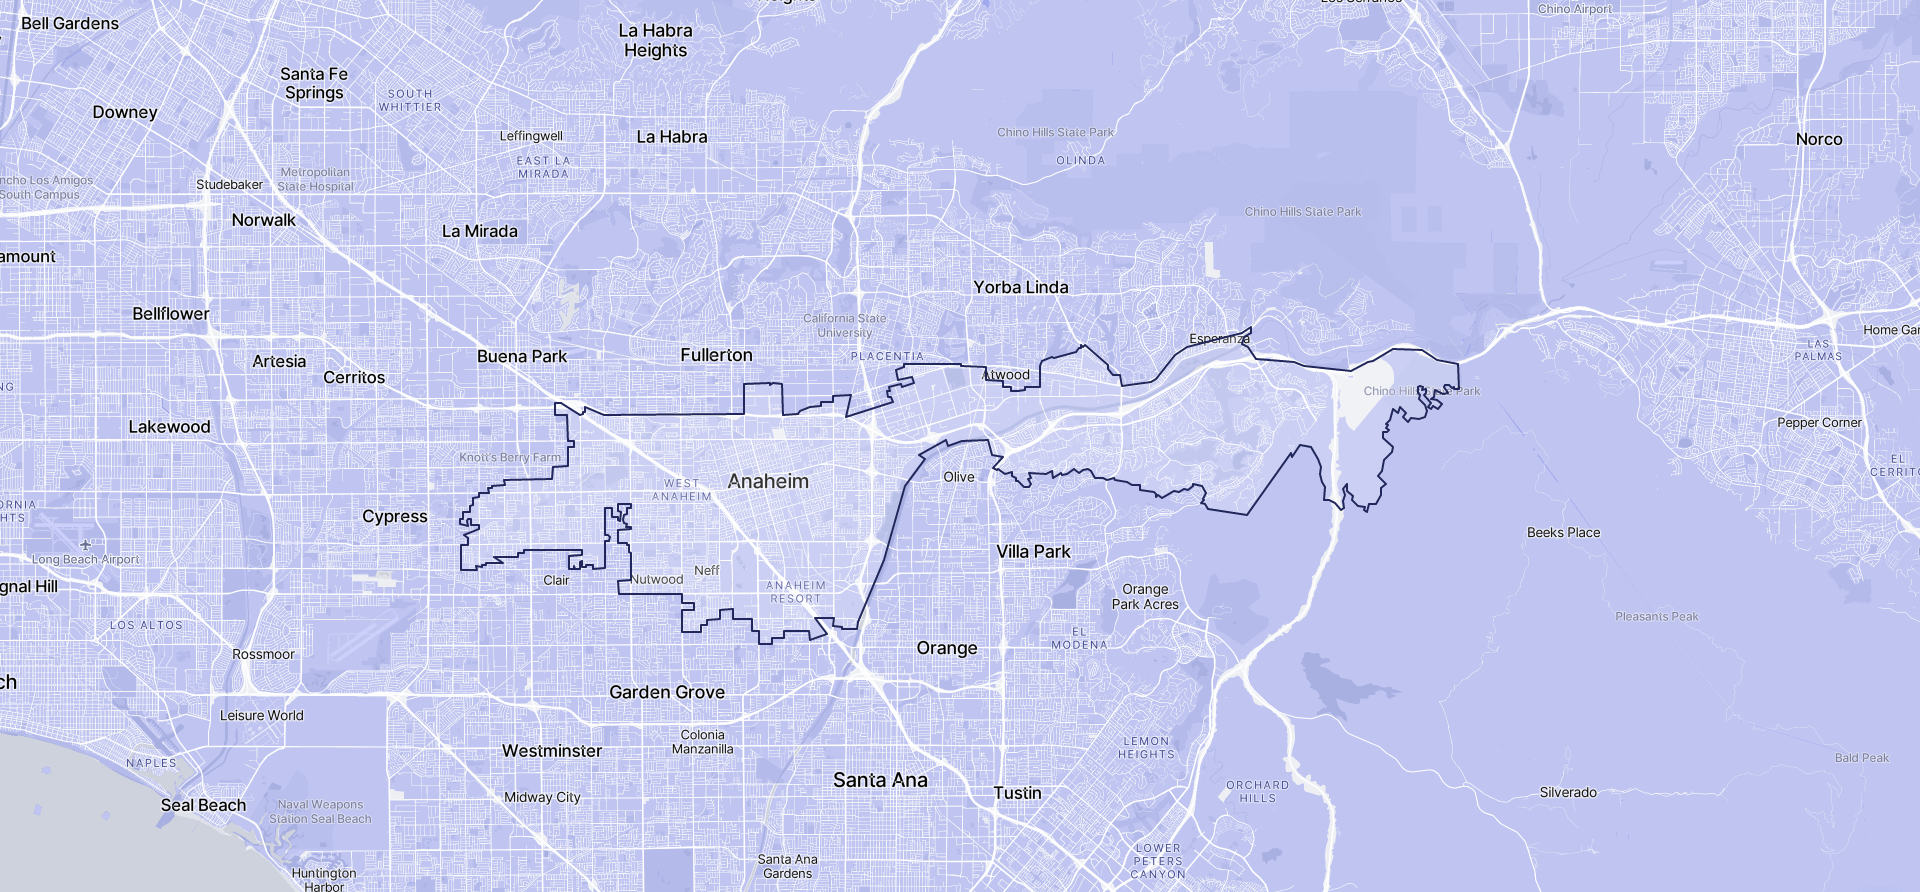 Image of Anaheim boundaries on a map.